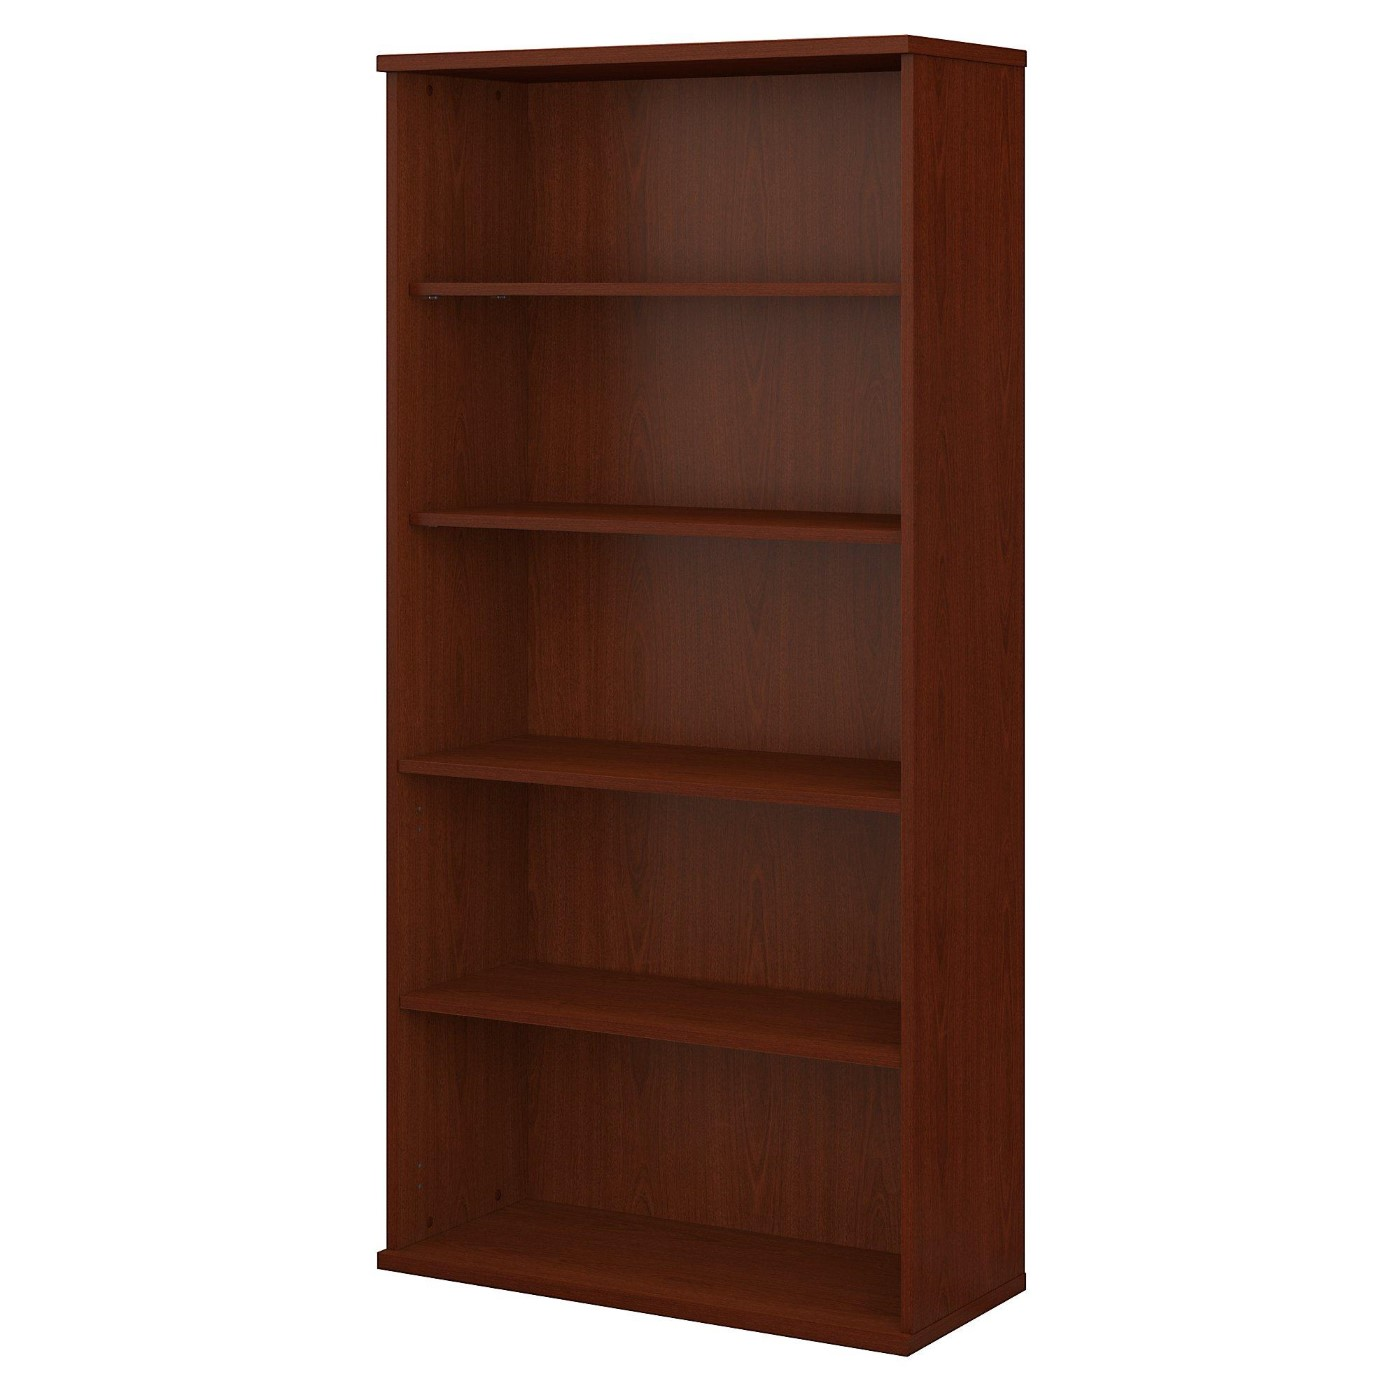 <font color=#c60><b>BUSH BUSINESS FURNITURE SERIES C 36W 5 SHELF BOOKCASE. FREE SHIPPING</font></b>